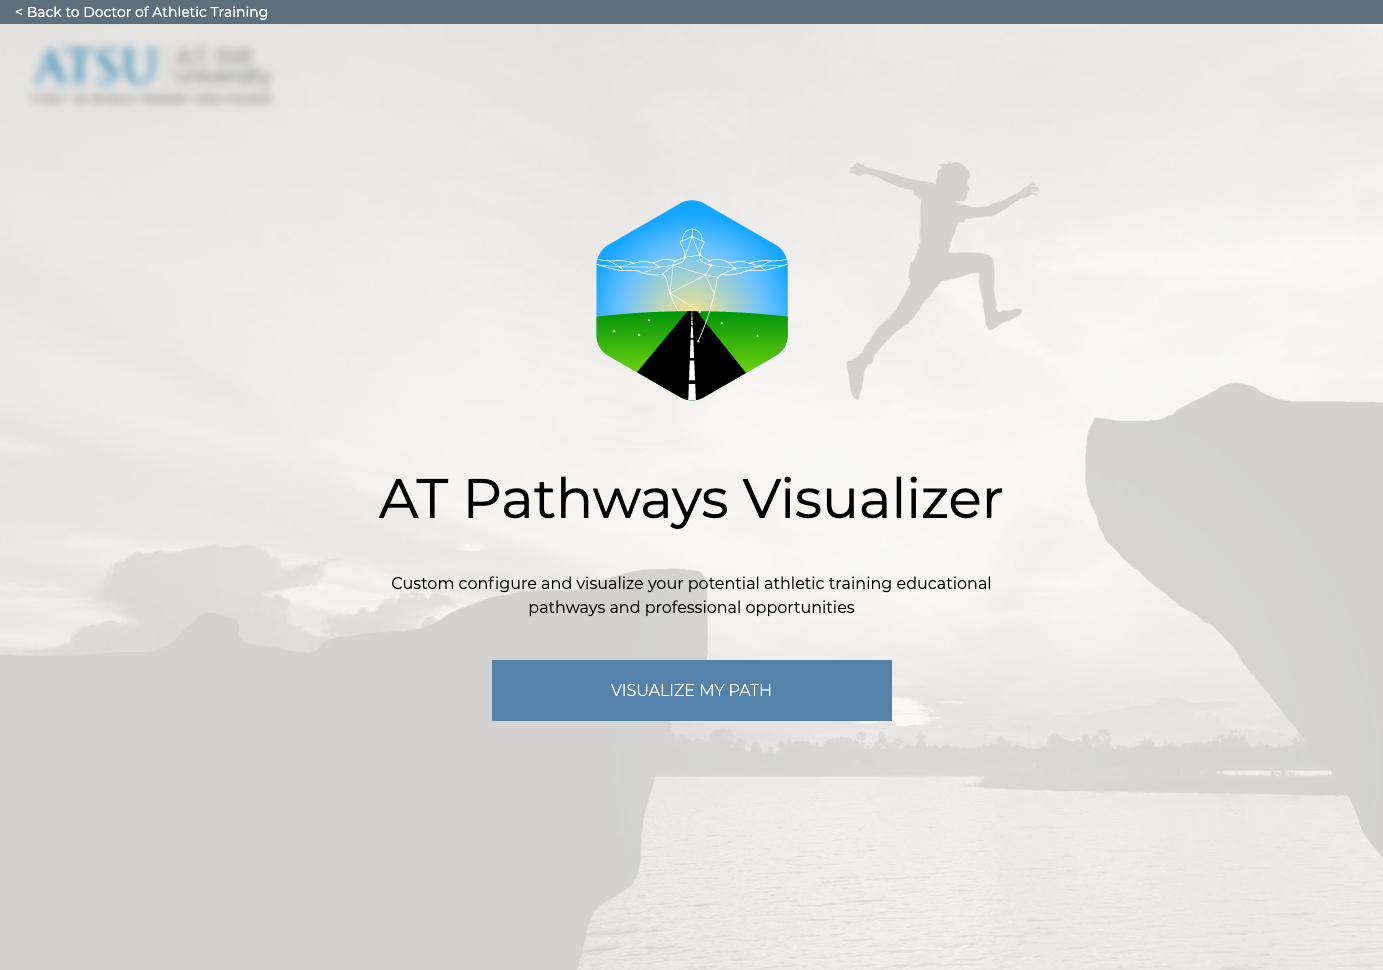 Screenshot of AT Pathways Visualizer